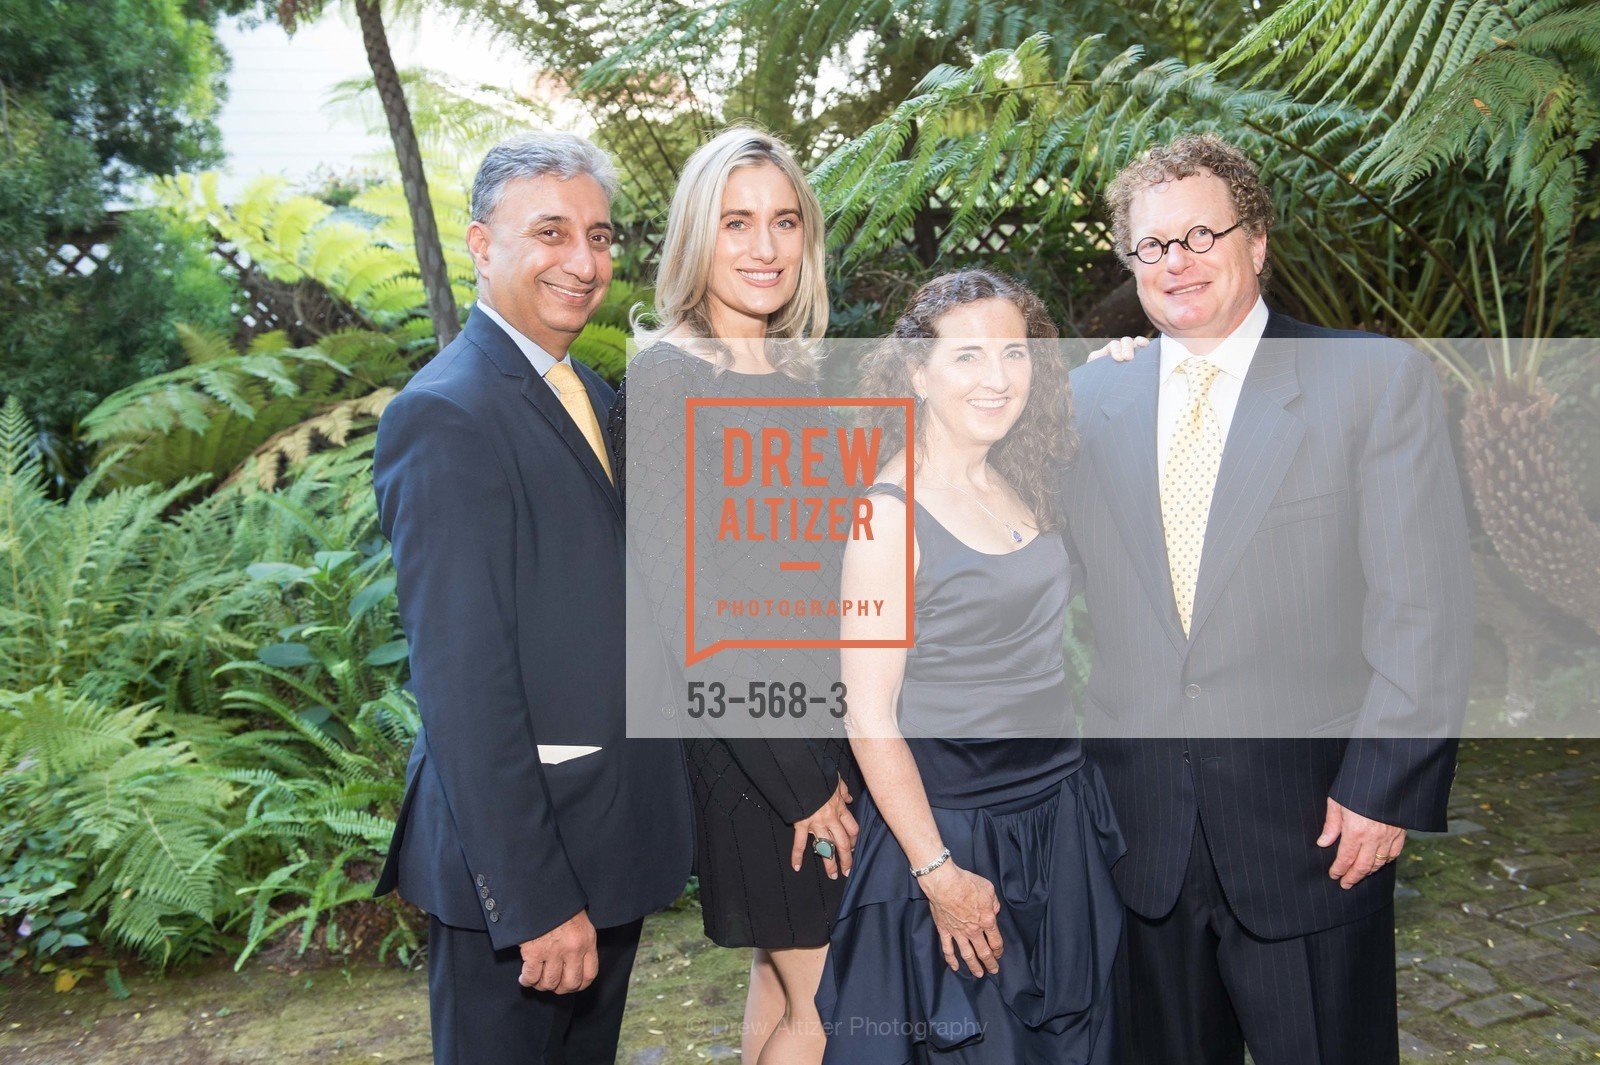 Raj Singh, Renata Anderson, Sarah Retchye, Ed Frank, SOTHEBY'S  Hosts a Private Viewing of Highlights from the Collection of MRS. PAUL MELLON, US, September 17th, 2014,Drew Altizer, Drew Altizer Photography, full-service agency, private events, San Francisco photographer, photographer california